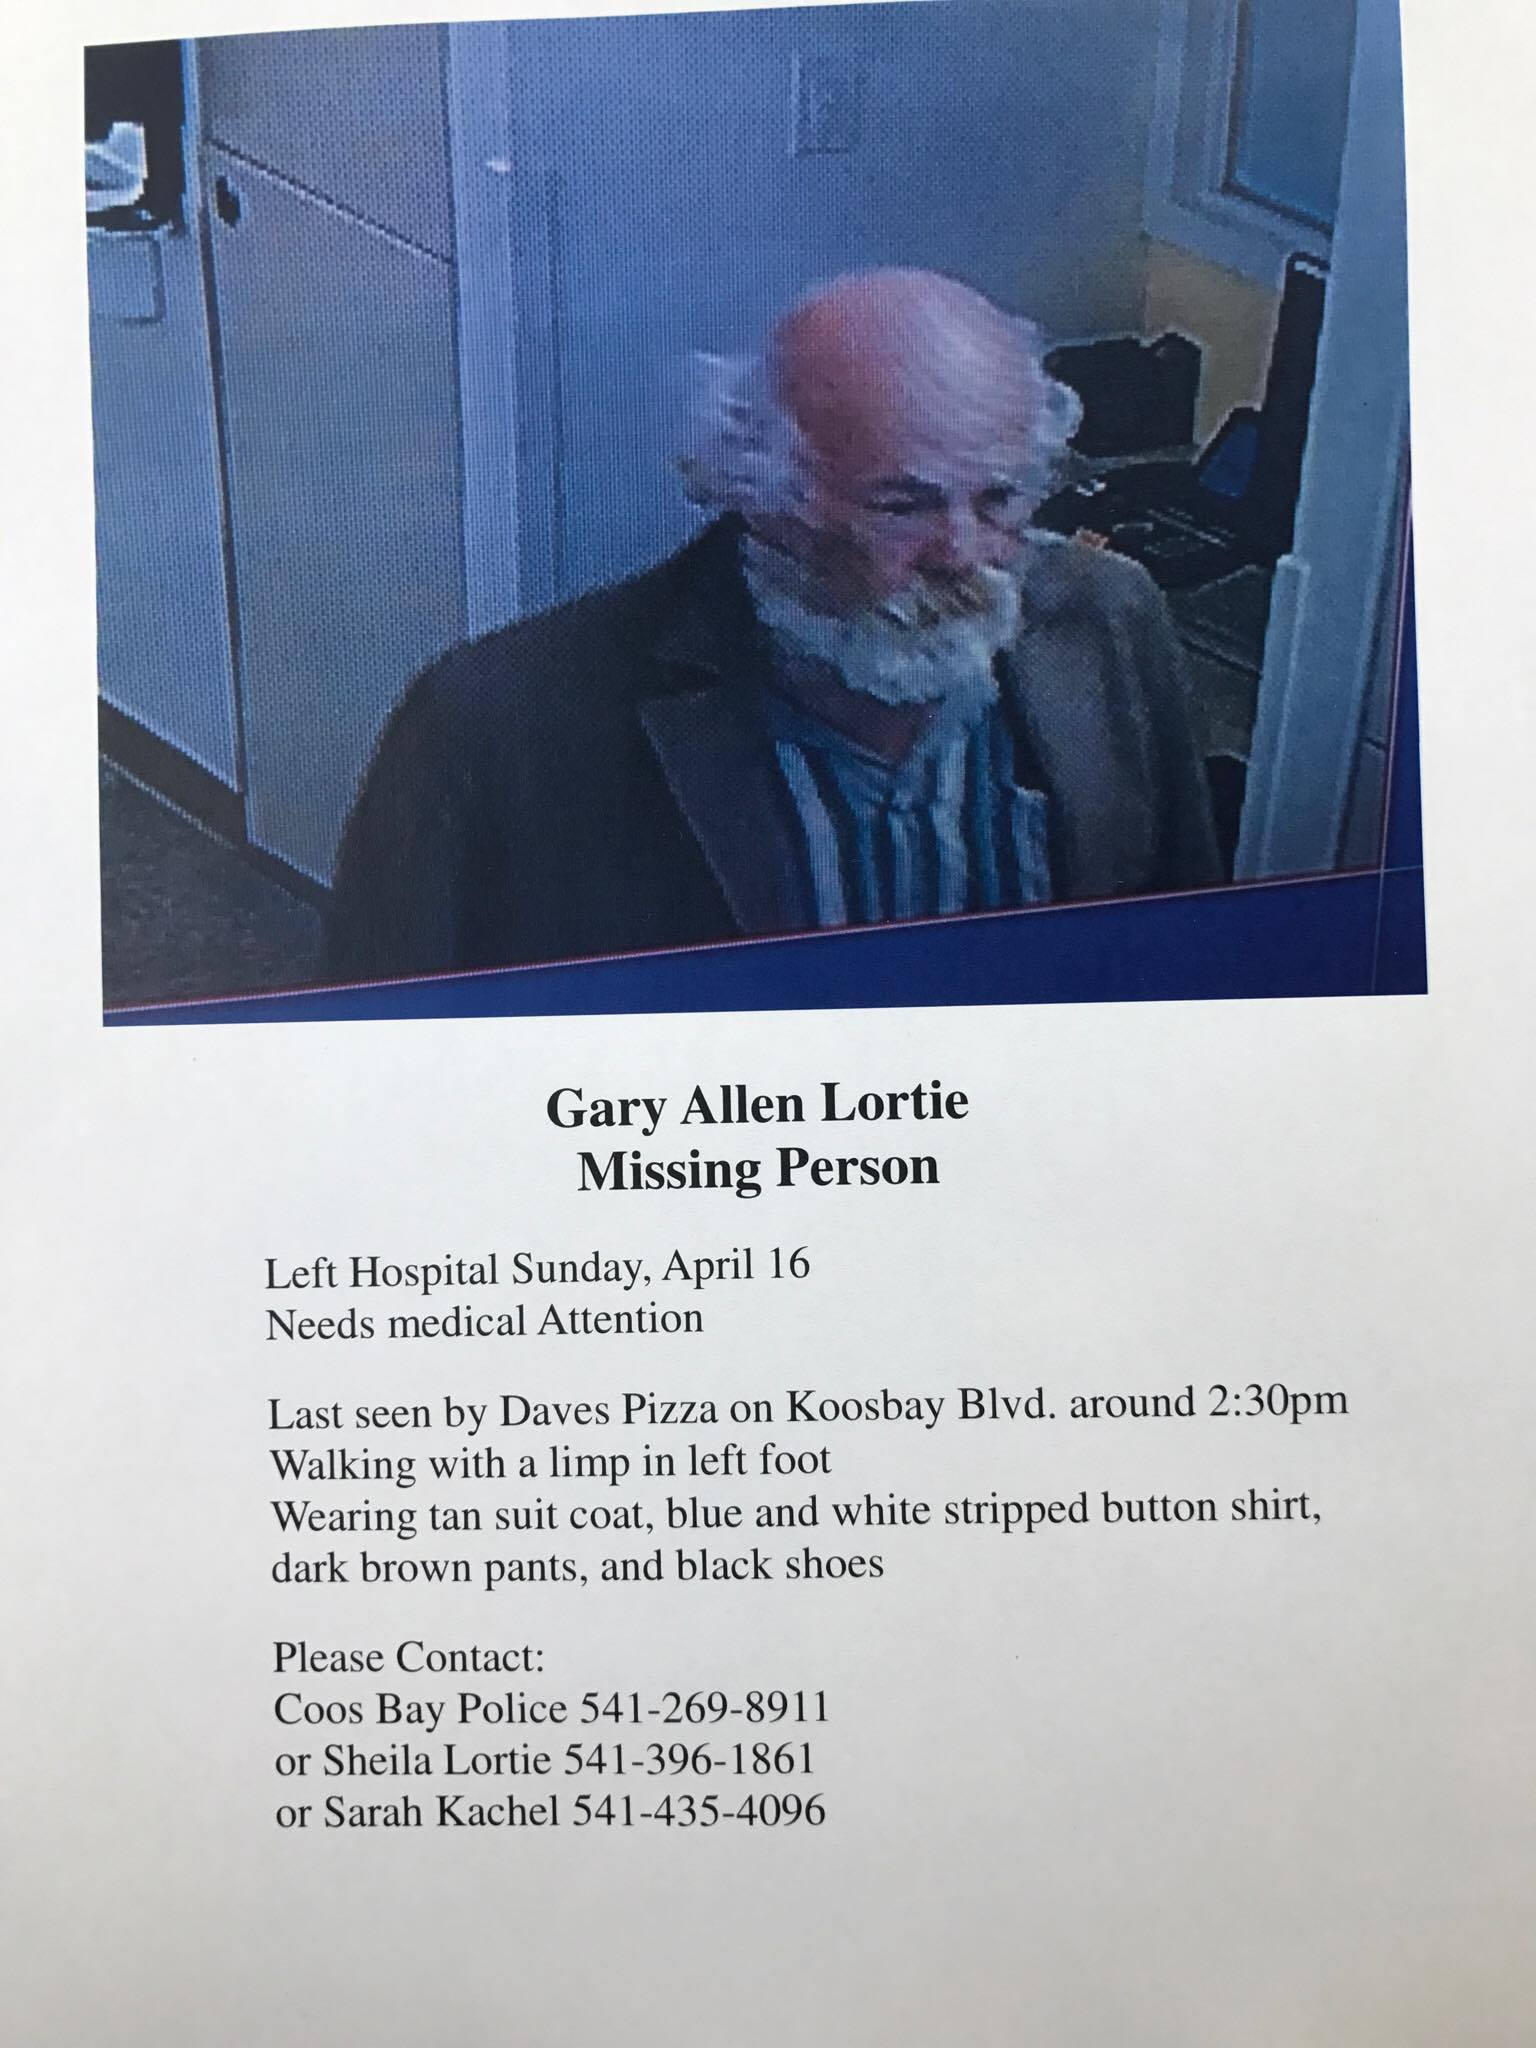 Flyer with information about Gary Lortie, who was reported missing after leaving Bay Area Hospital on April 16, 2017. (Image courtesy Sarah Kachel via Facebook group)